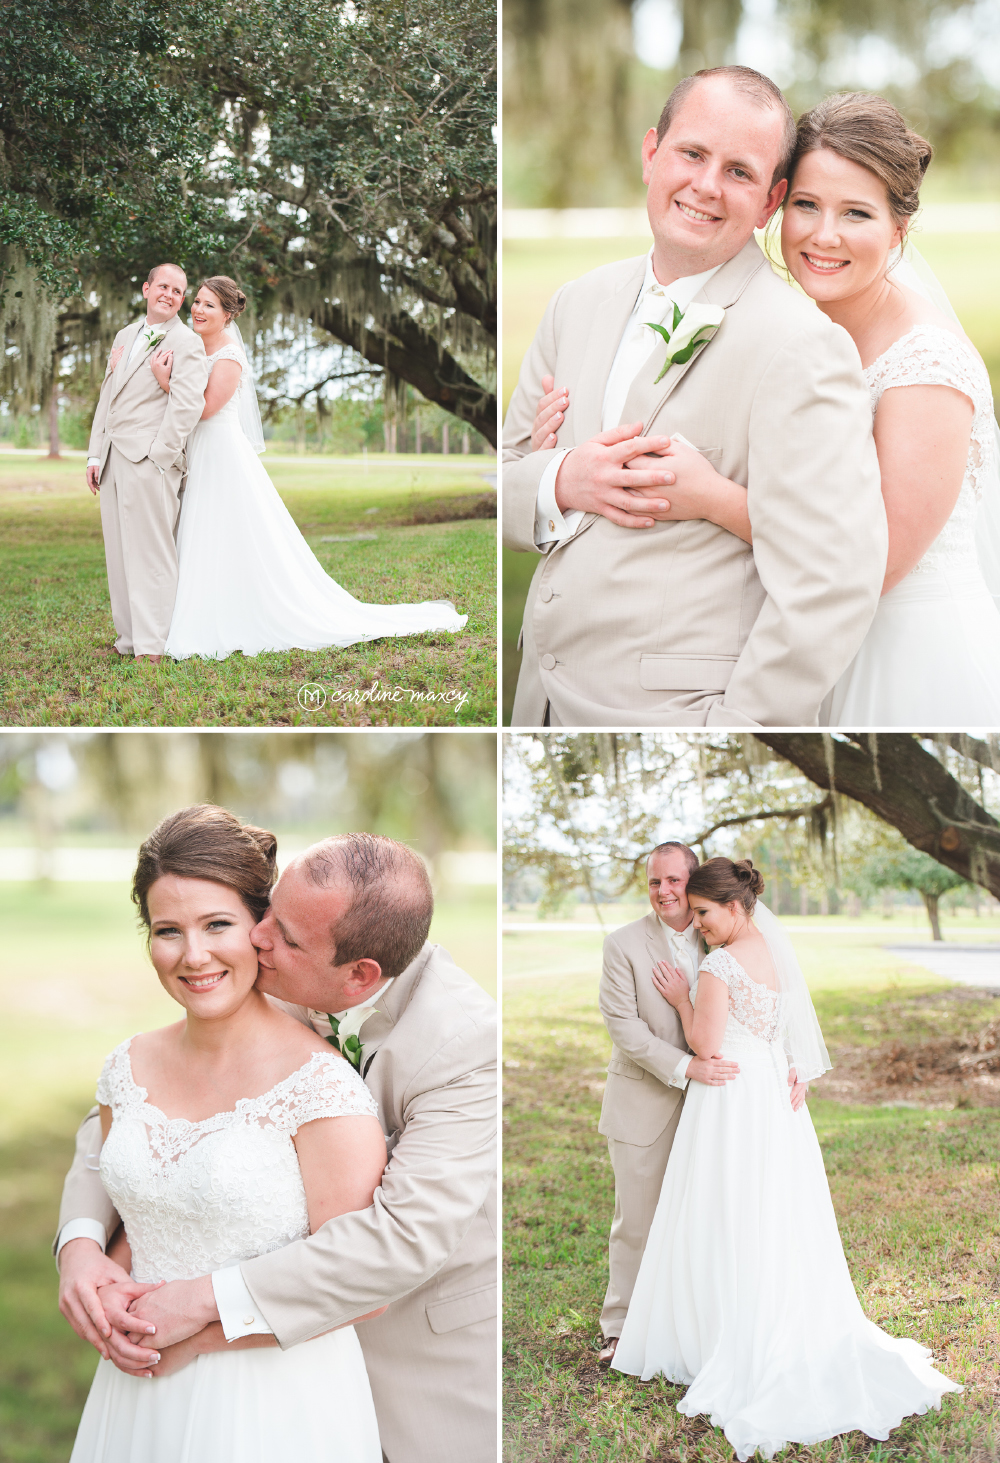 Mary Craig and Jerry Lee wedded bliss! Sebring, FL Wedding Photography with Caroline Maxcy Photography.